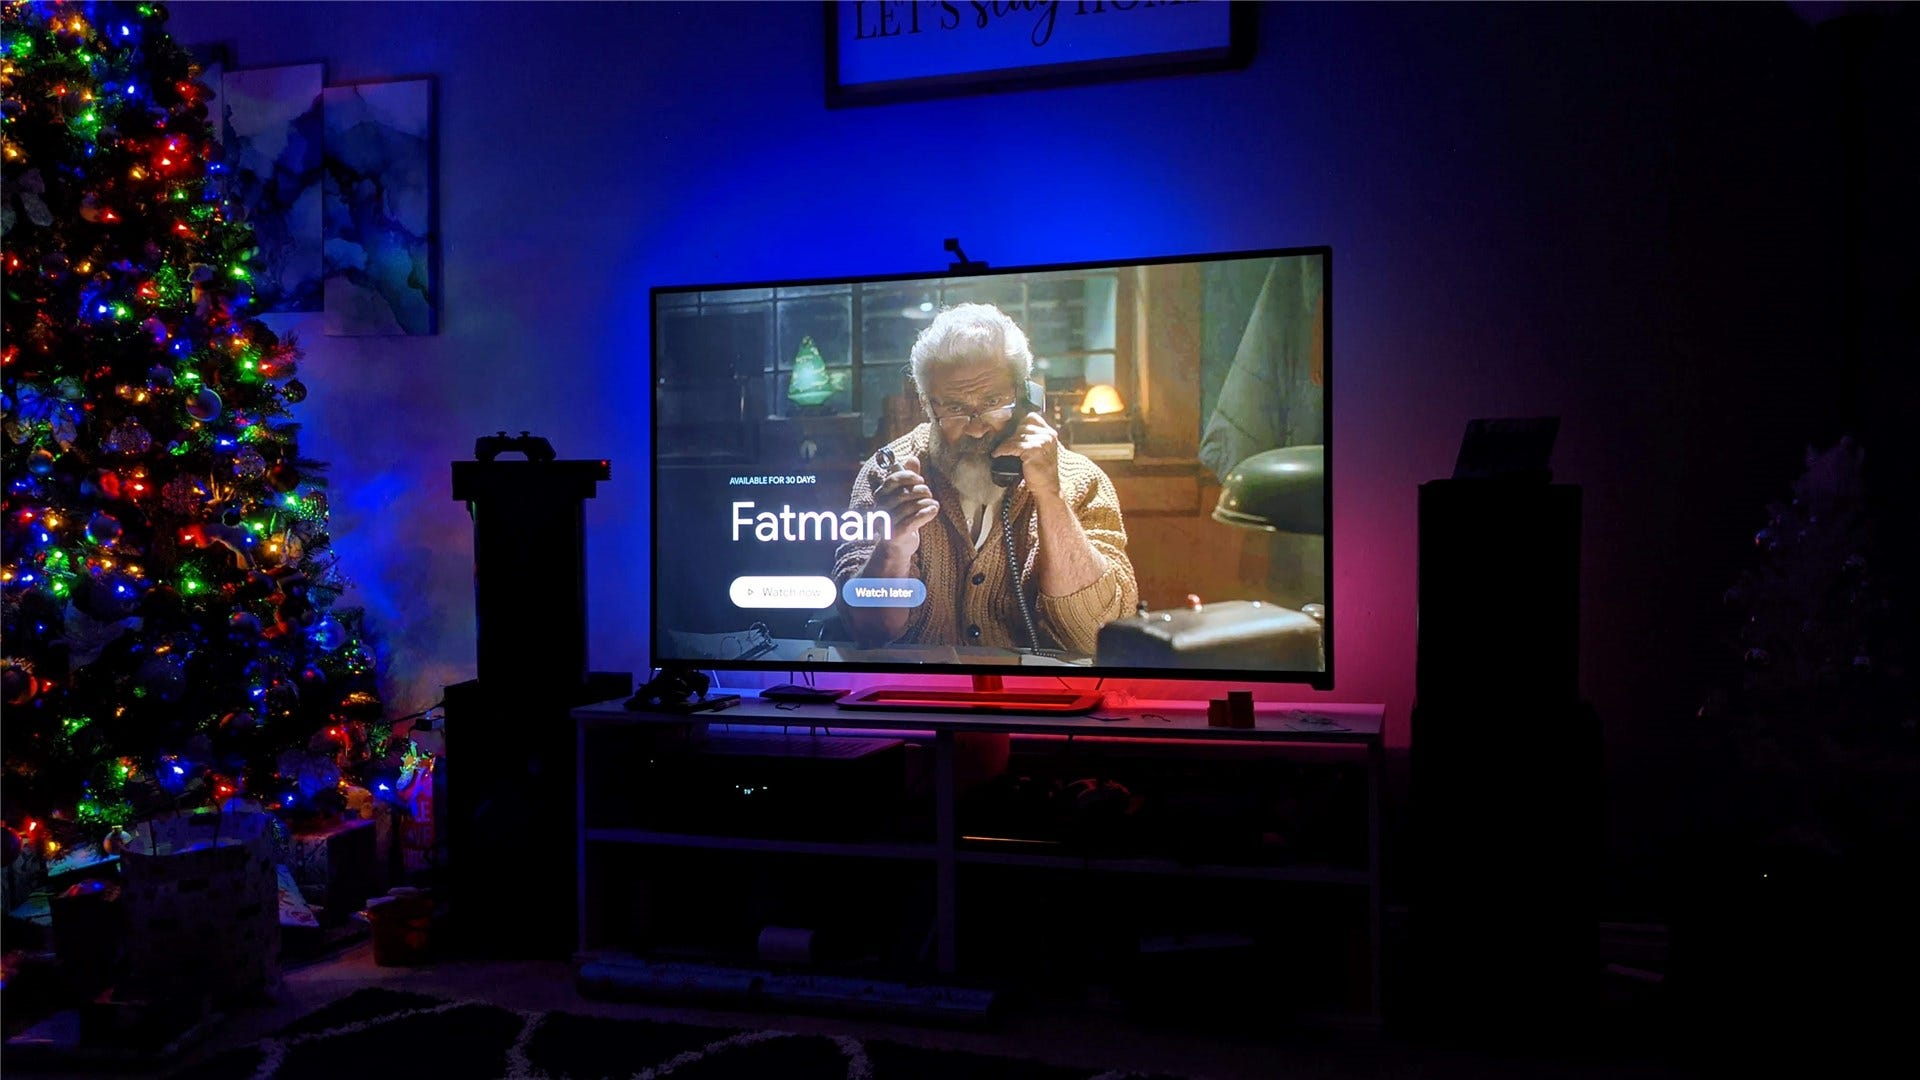 """A preview image for the movie """"Fatman"""" with the Immersion glowing blue and pink behind the TV"""